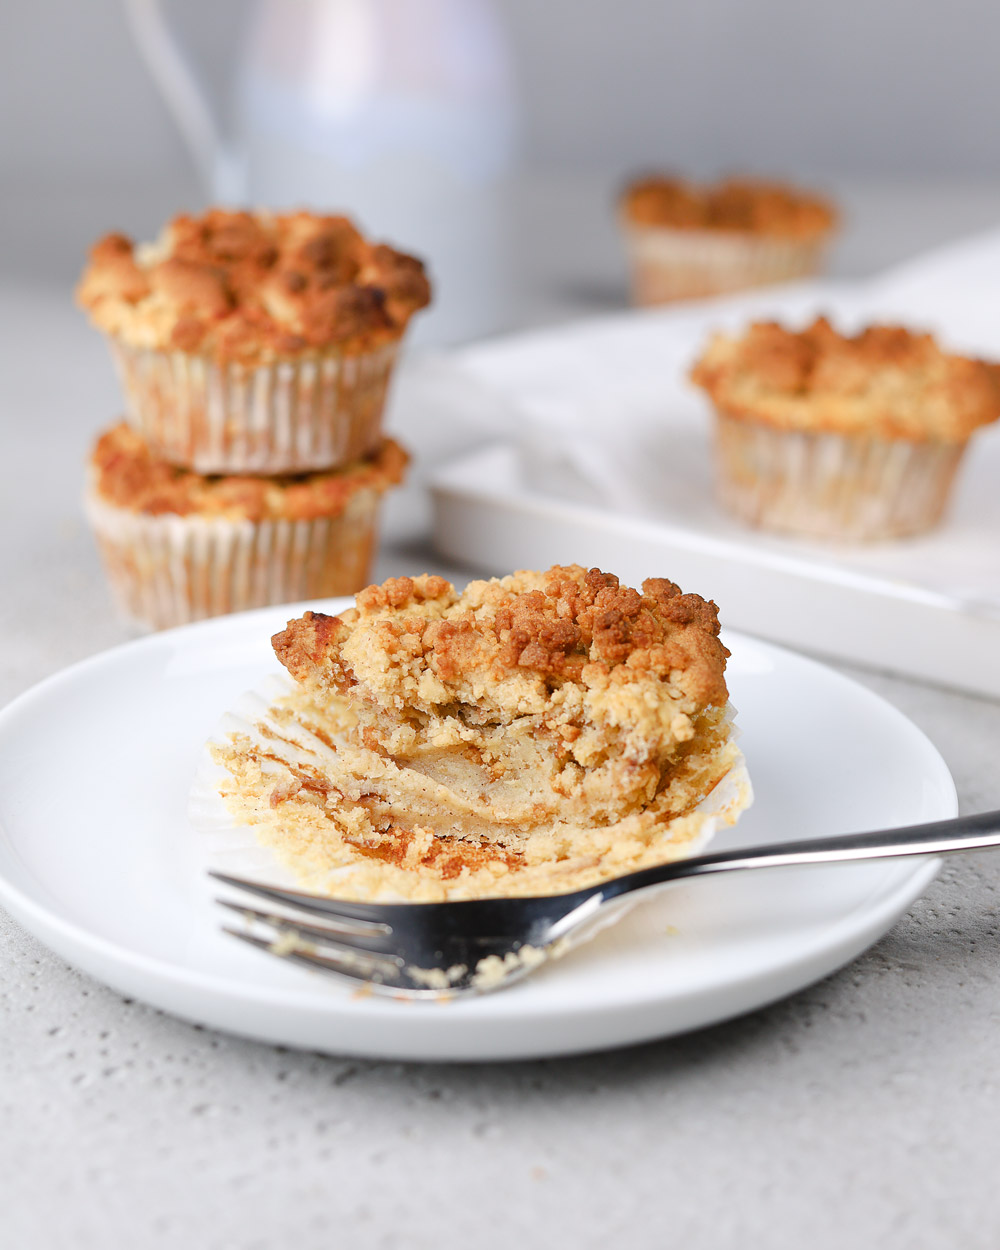 Apfe-Streusel-Muffins